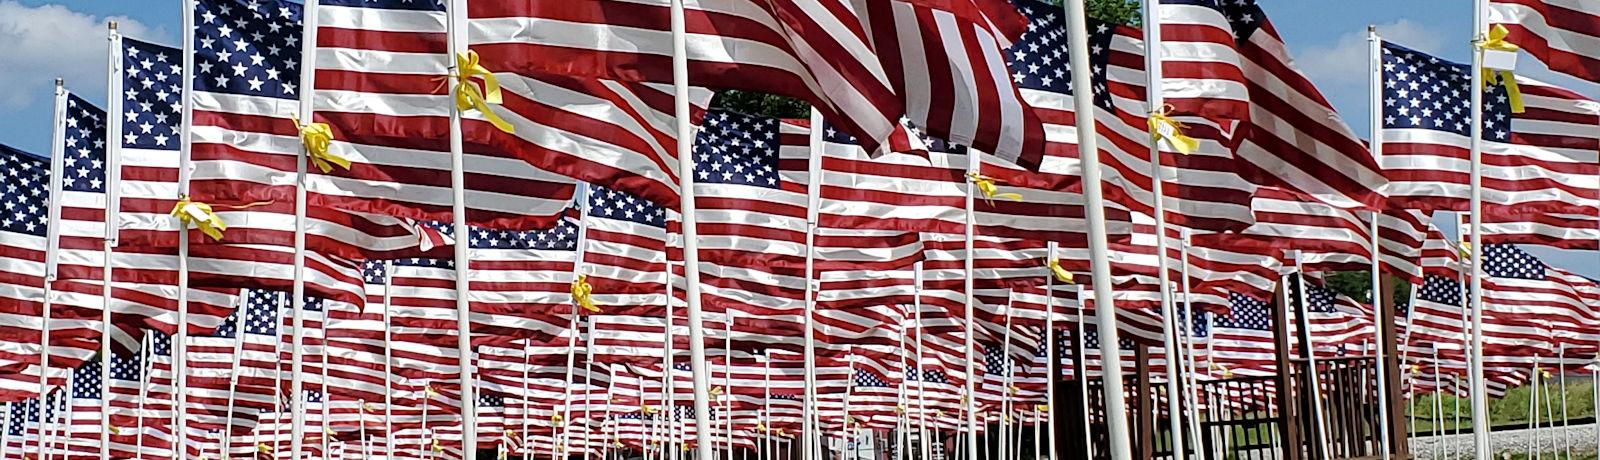 American Flags - American Legion Post 281